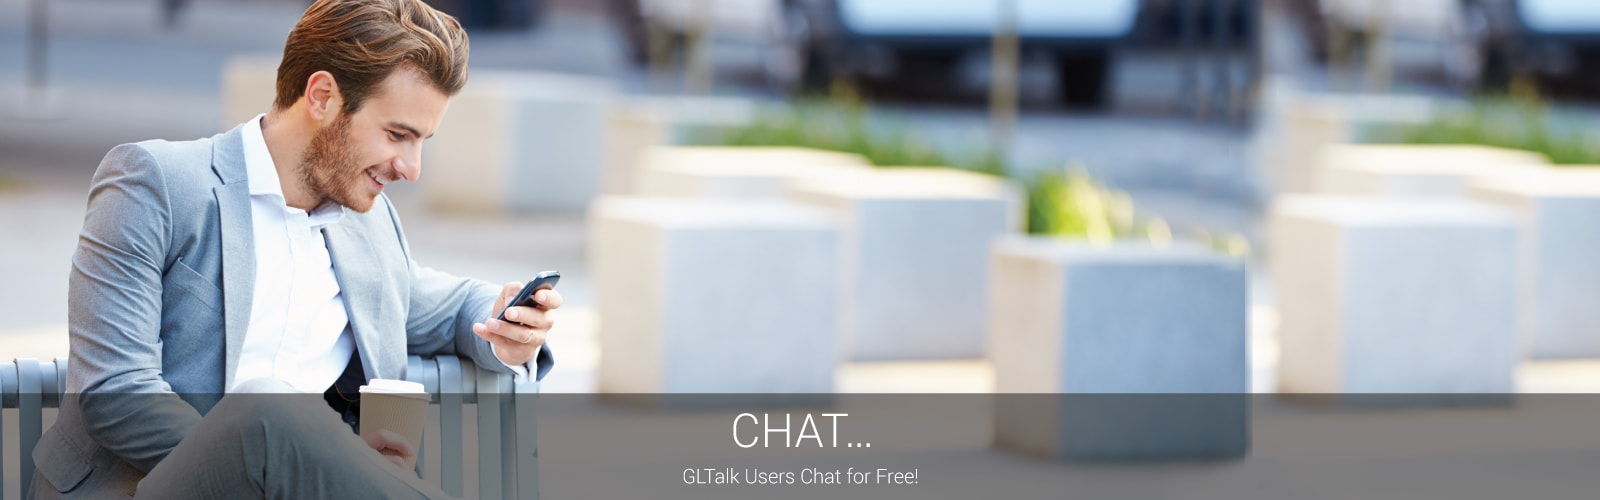 CHAT.GLTalk Users Chat for Free!